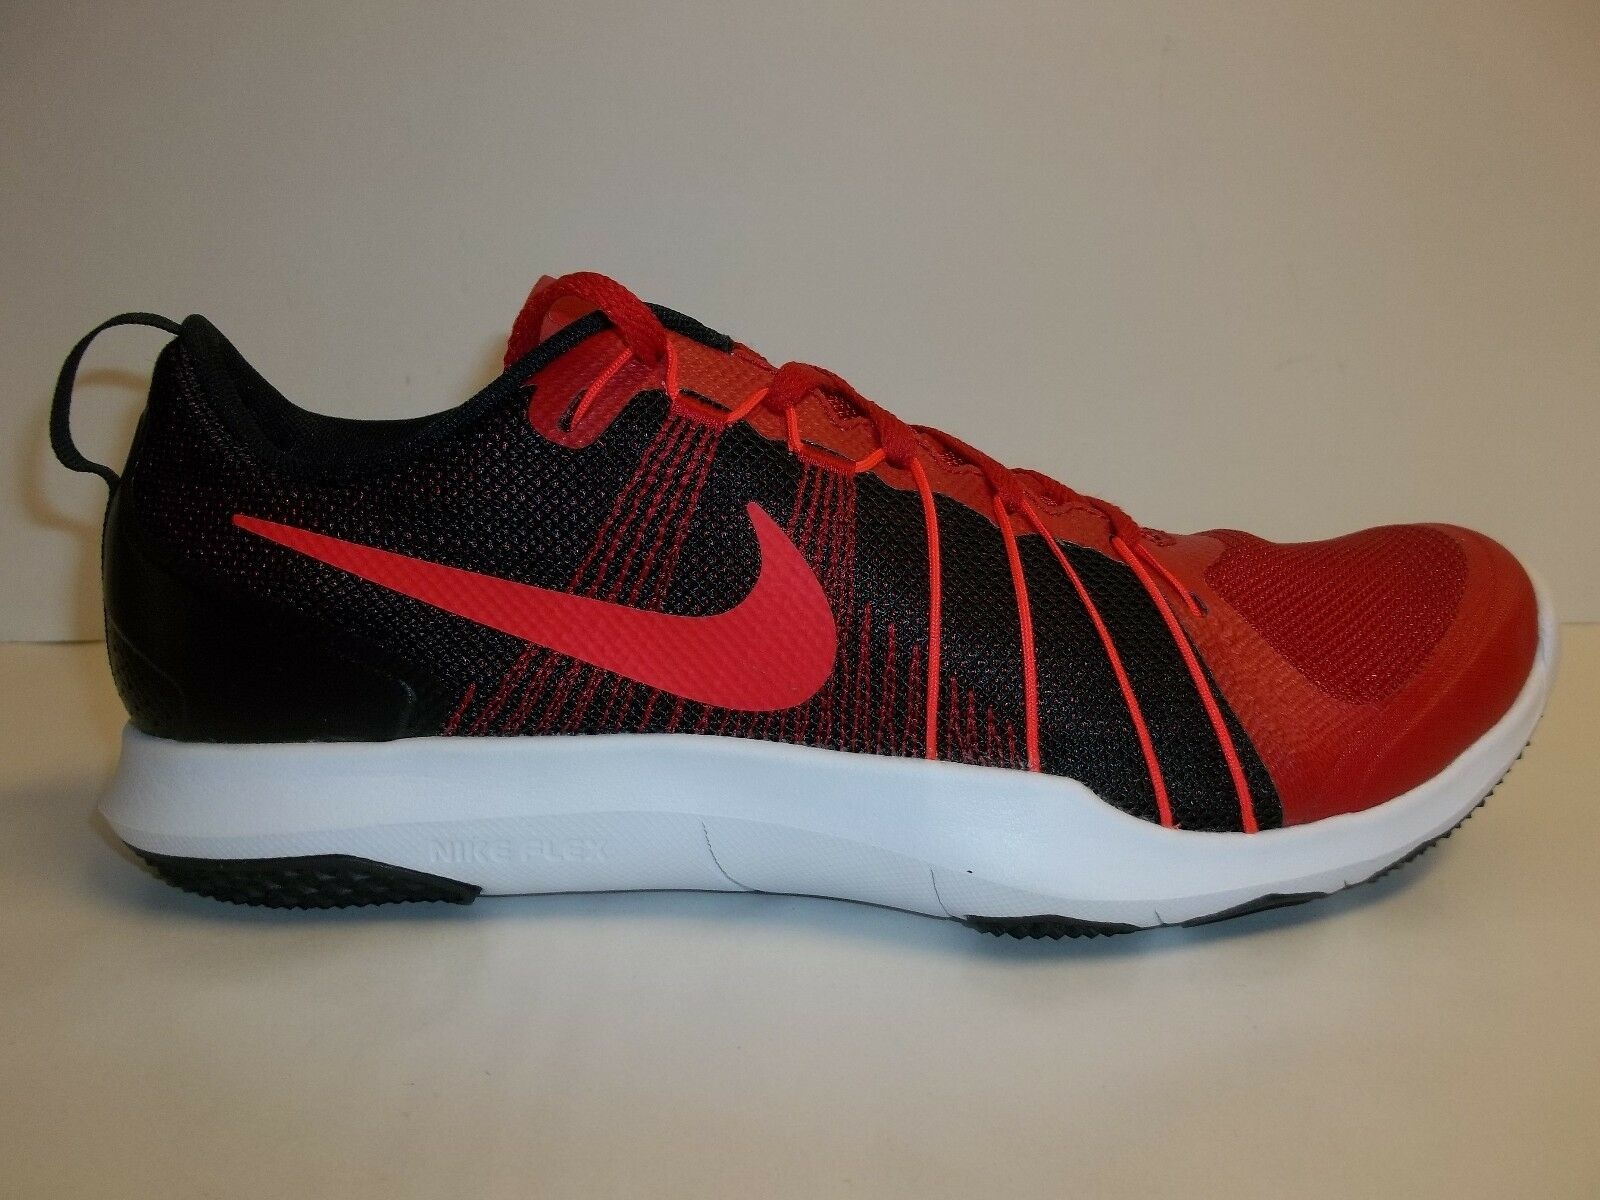 Nike Size 10 FLEX TRAIN AVER Red Black Training Sneakers New Mens shoes